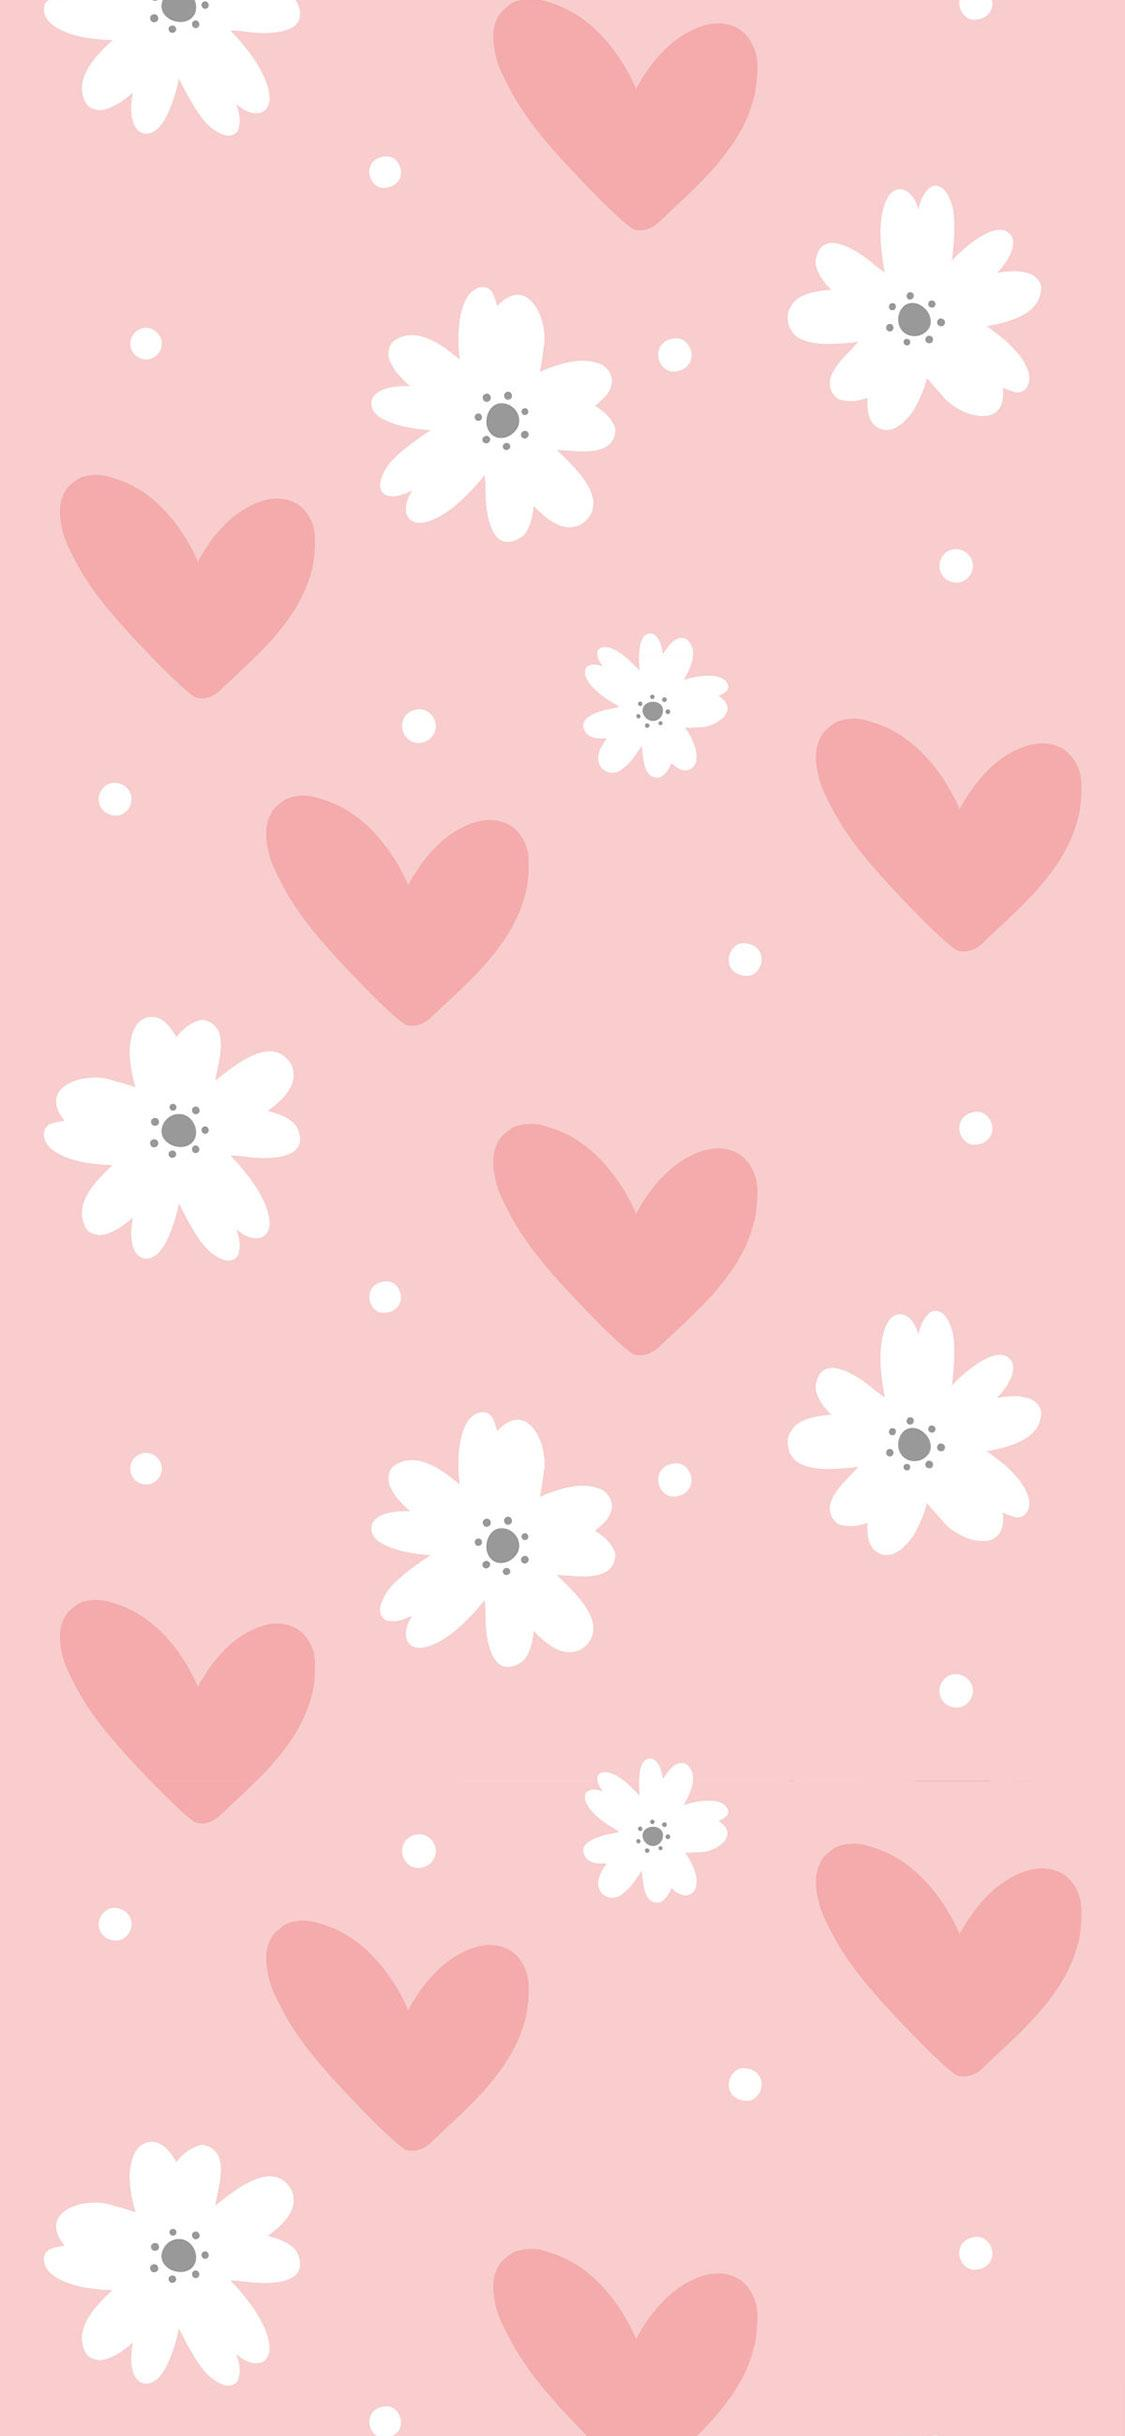 Cool Girly Wallpapers for iPhone (70+ images)  |Girly Iphone Wallpapers